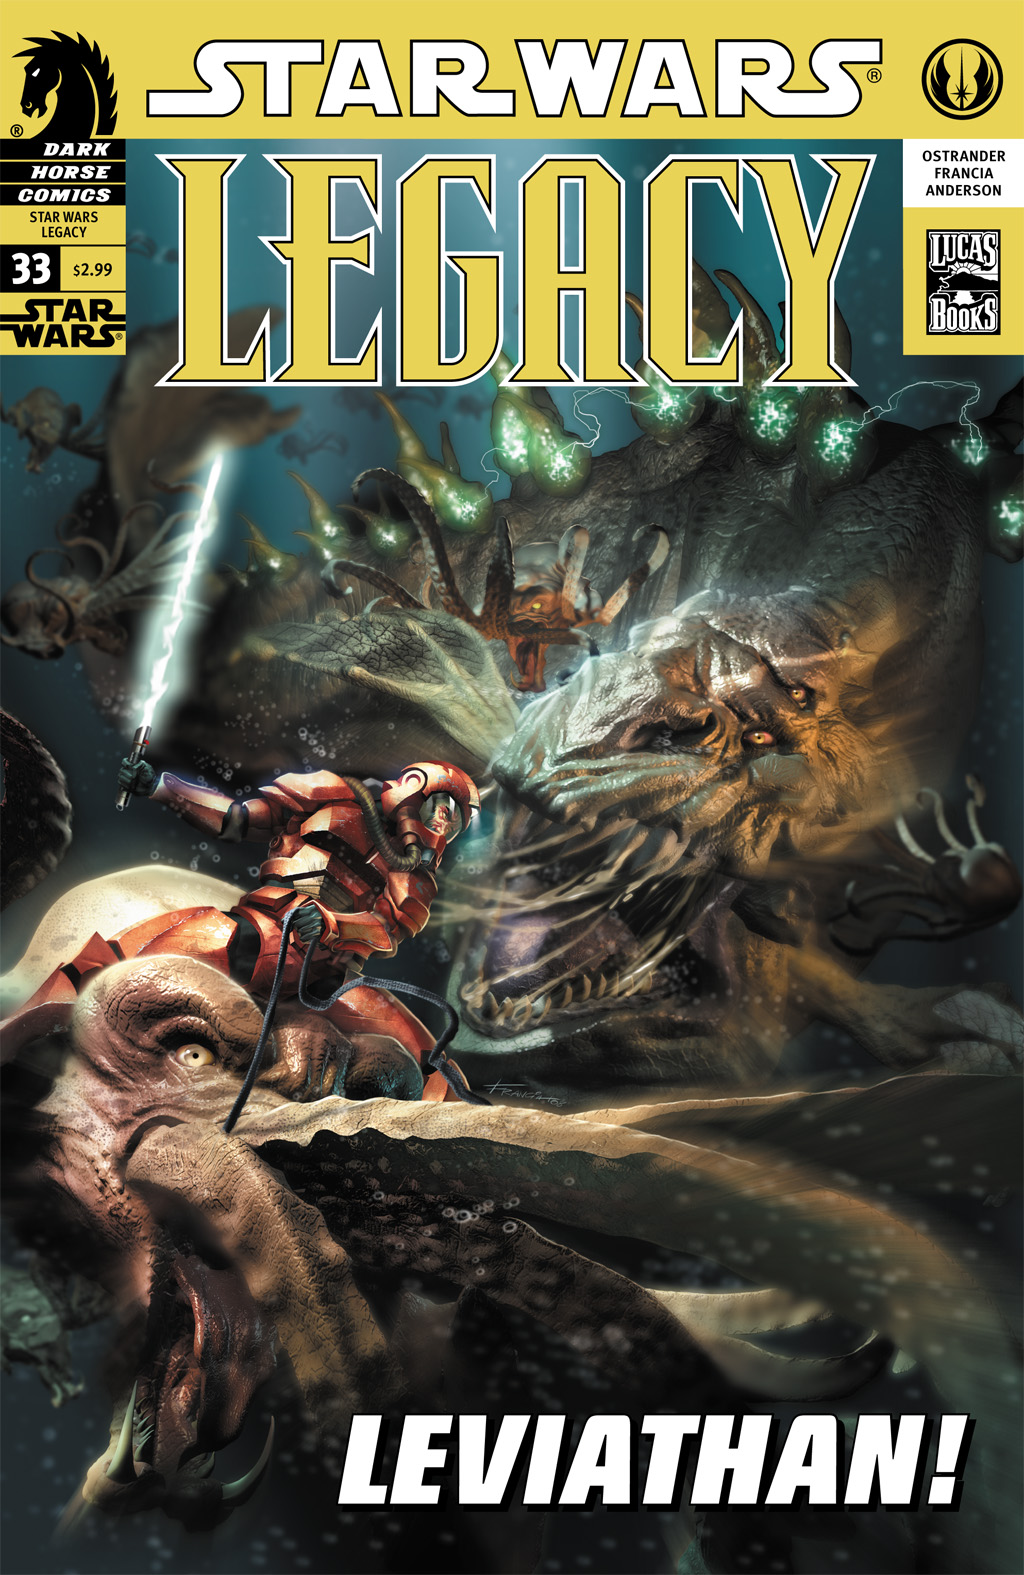 Star Wars: Legacy (2006) issue 33 - Page 1